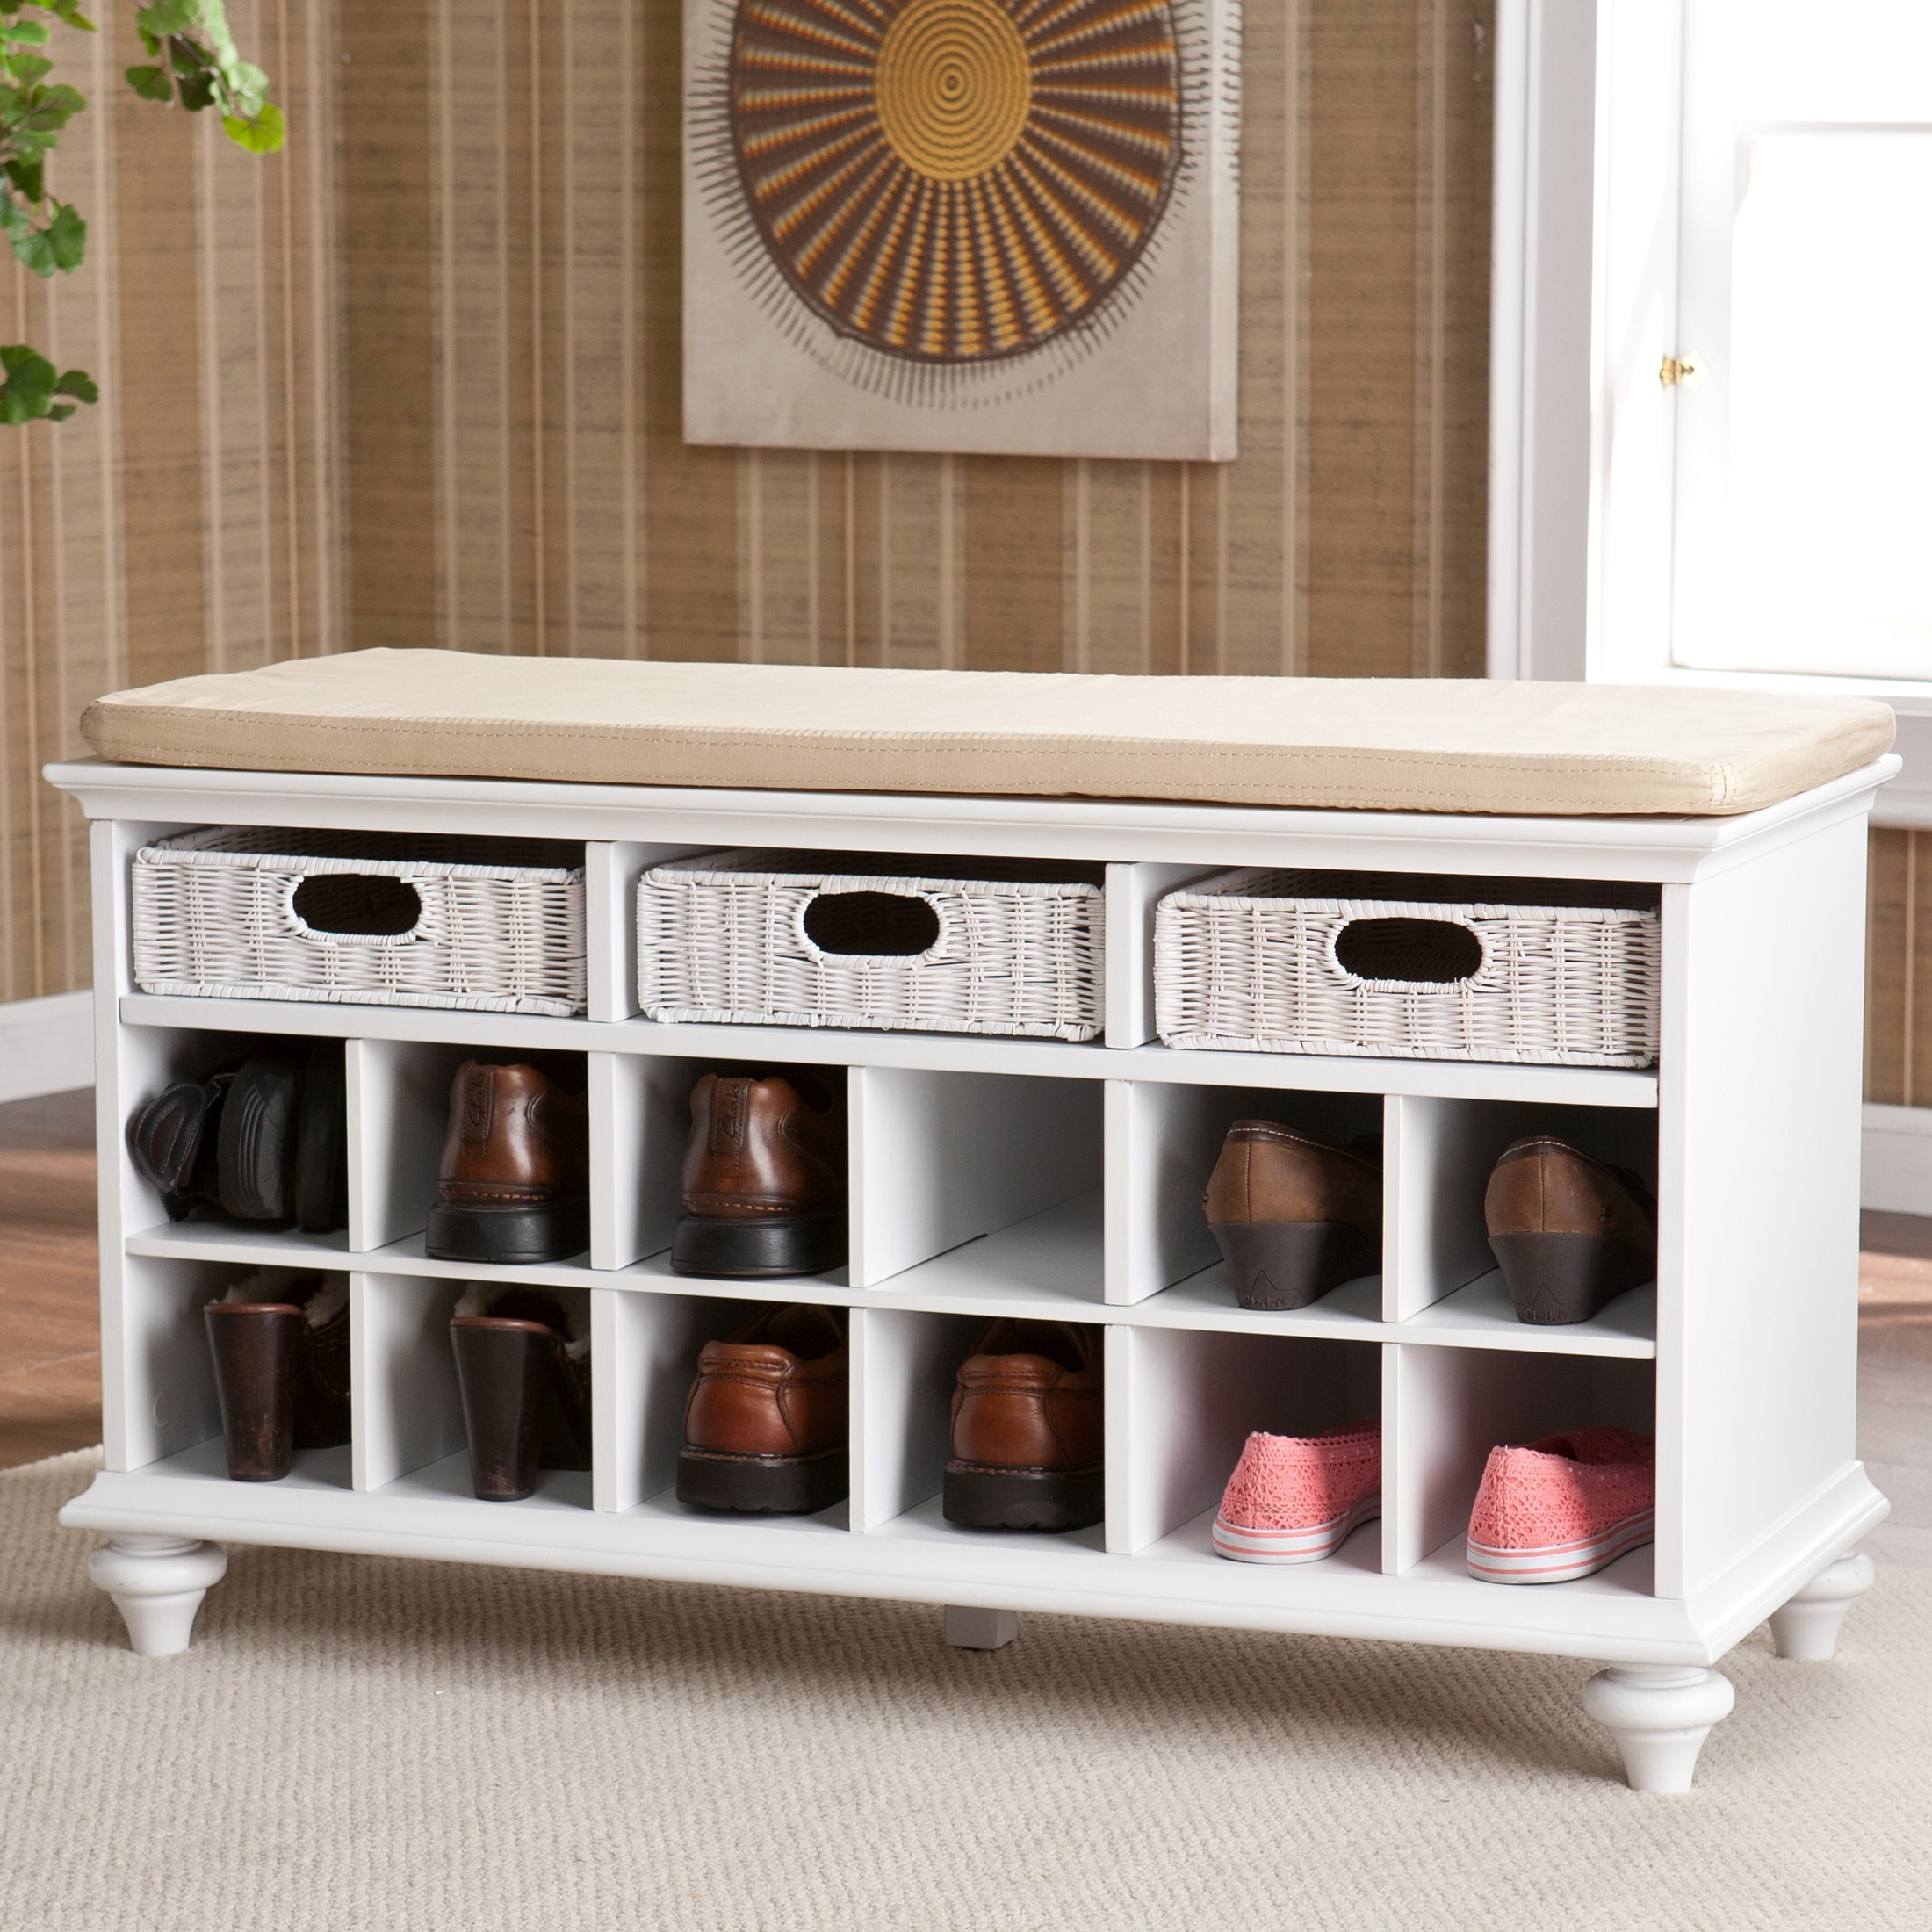 Upton Home Kelly White Entryway Bench with Storage